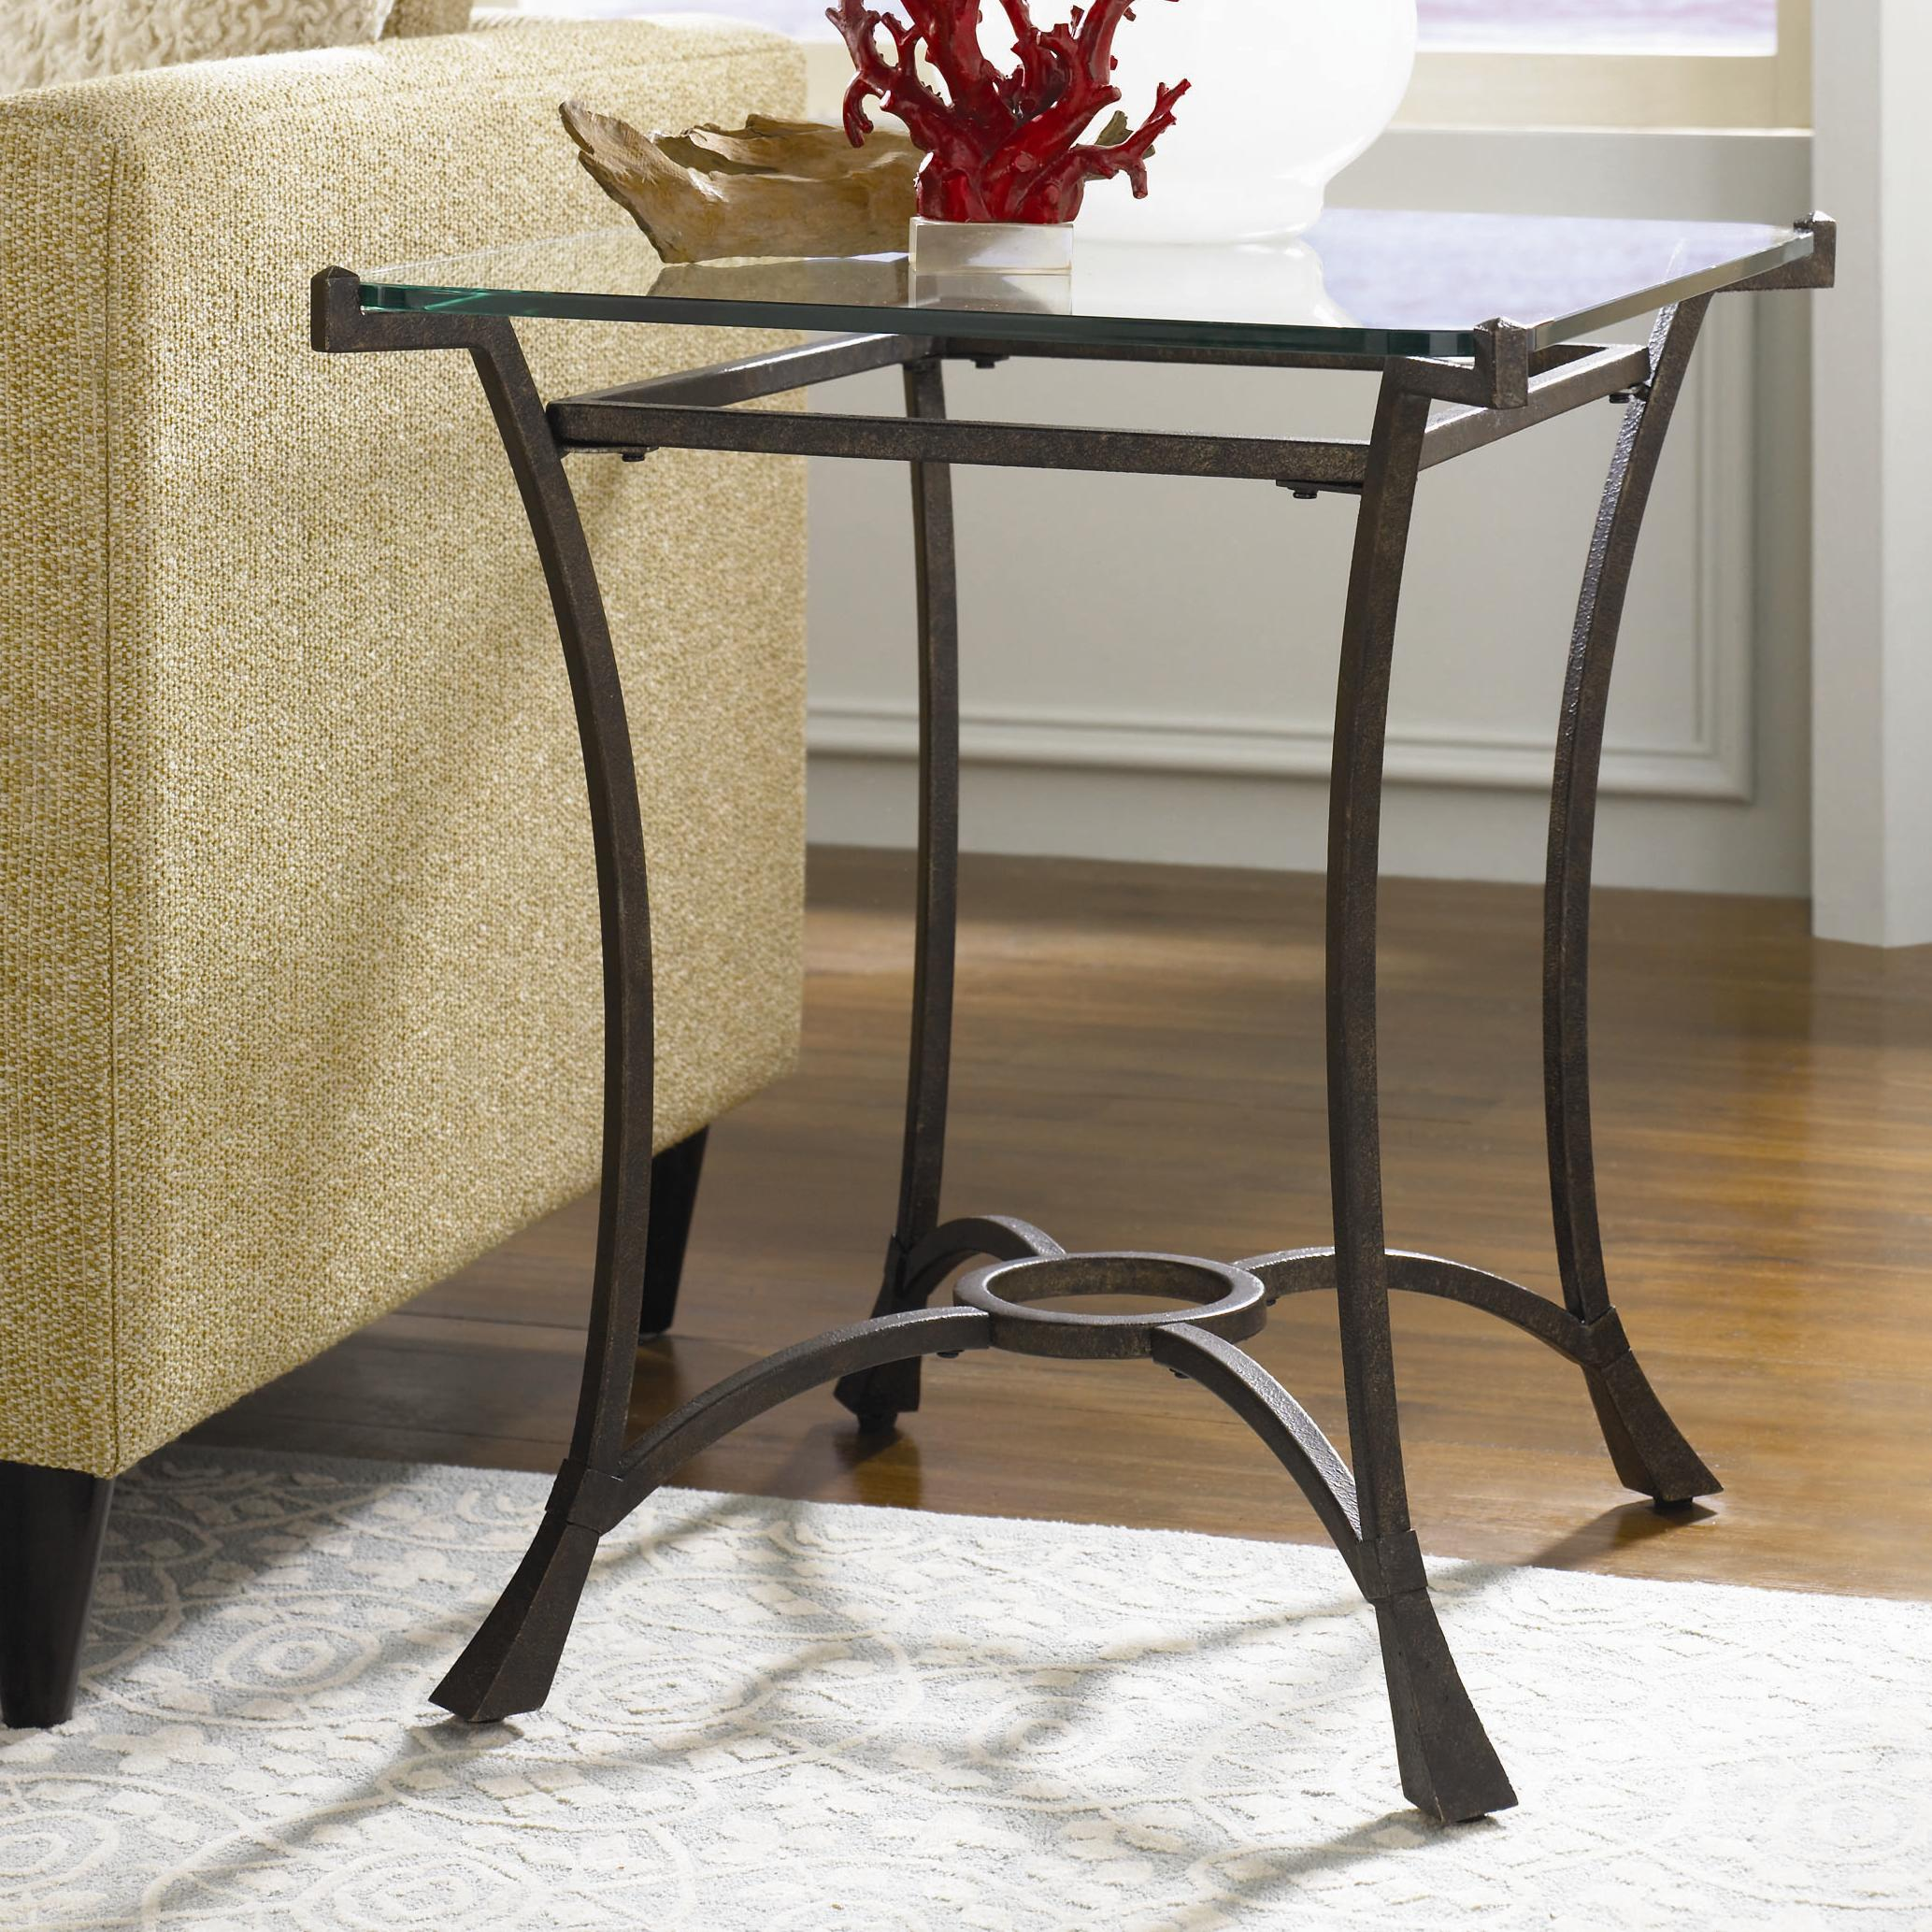 End Table For Living Room Sutton Contemporary Metal Rectangular End Table With Glass Top By Hammary At Wayside Furniture